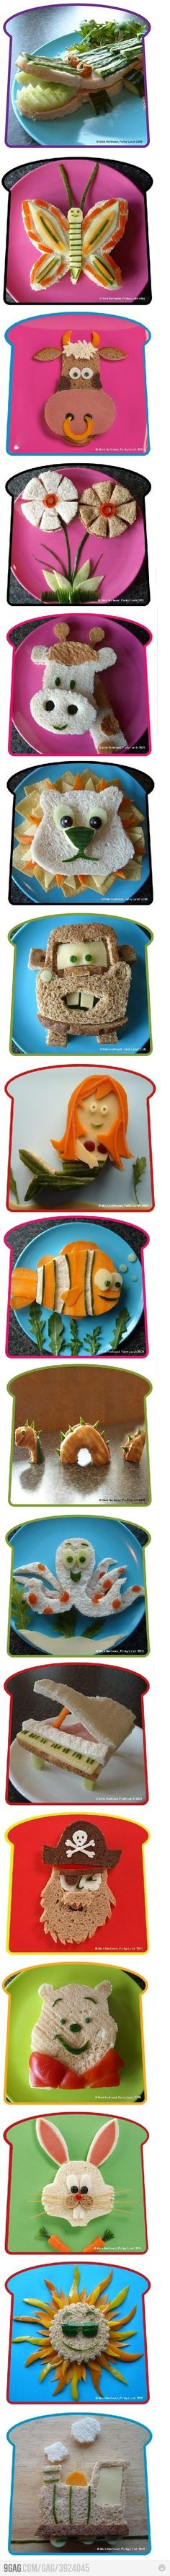 Food fun for kiddos